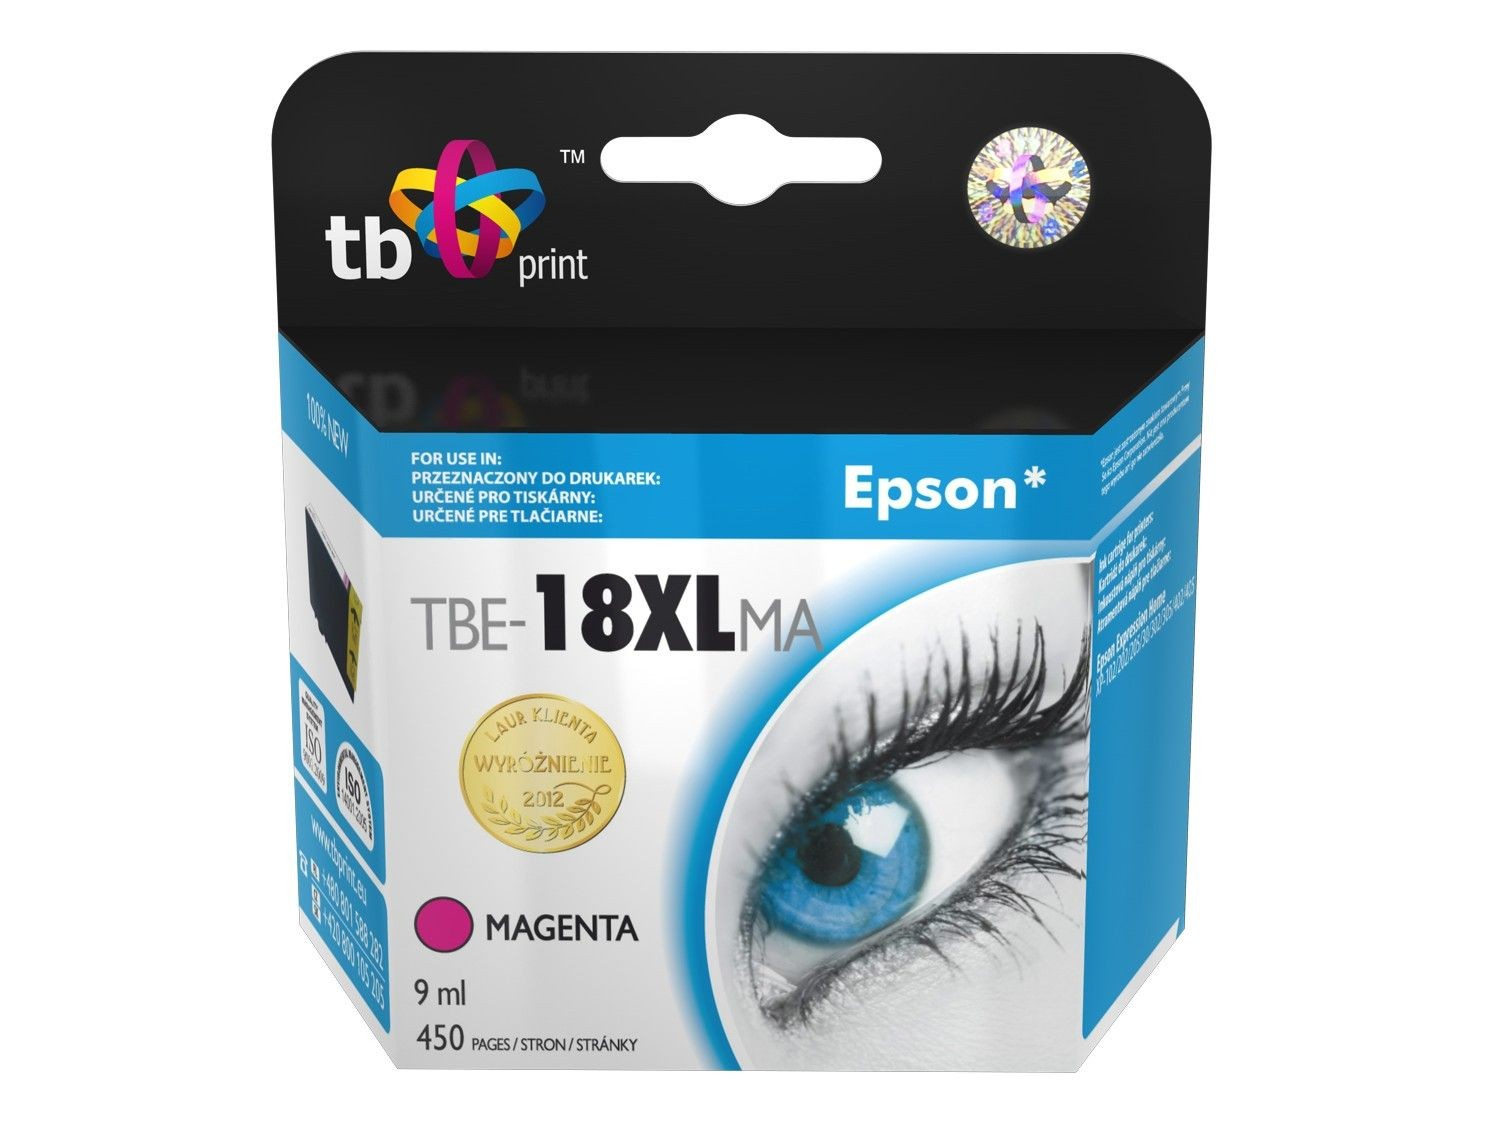 TB Print Tusz do Epson XP 302 TBE-18XLMA MA